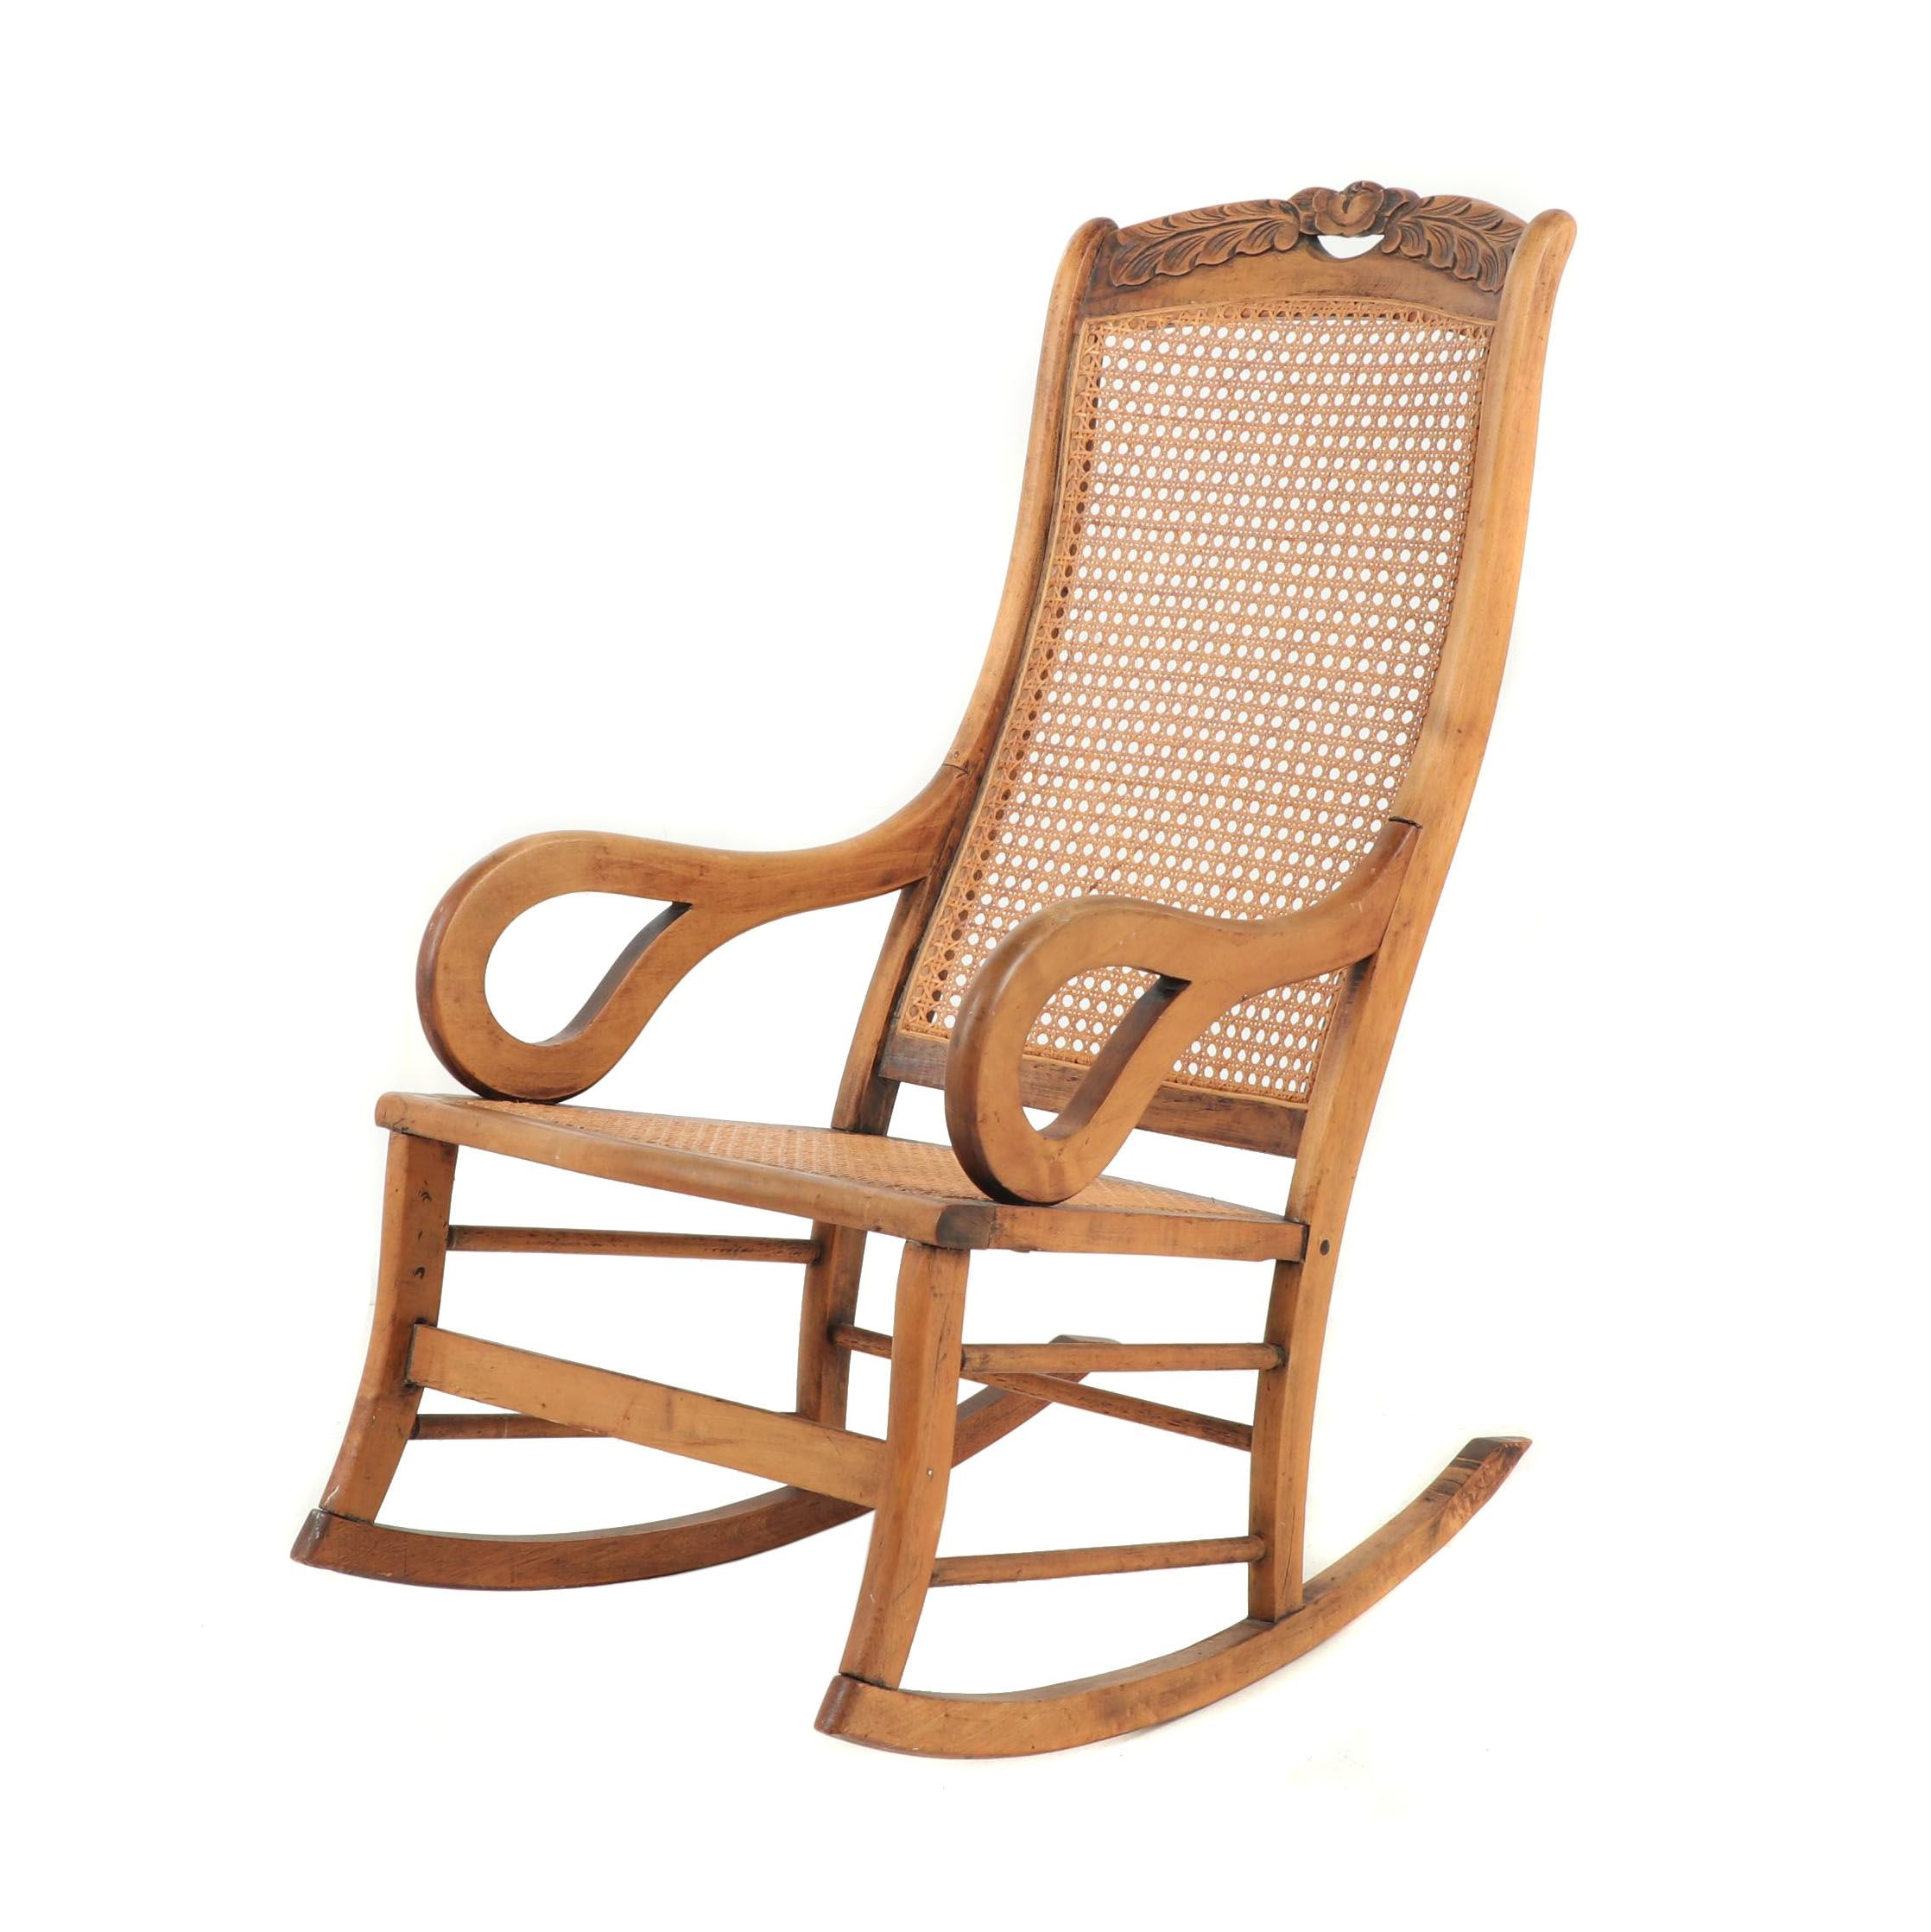 Cane Back Wooden Rocking Chair